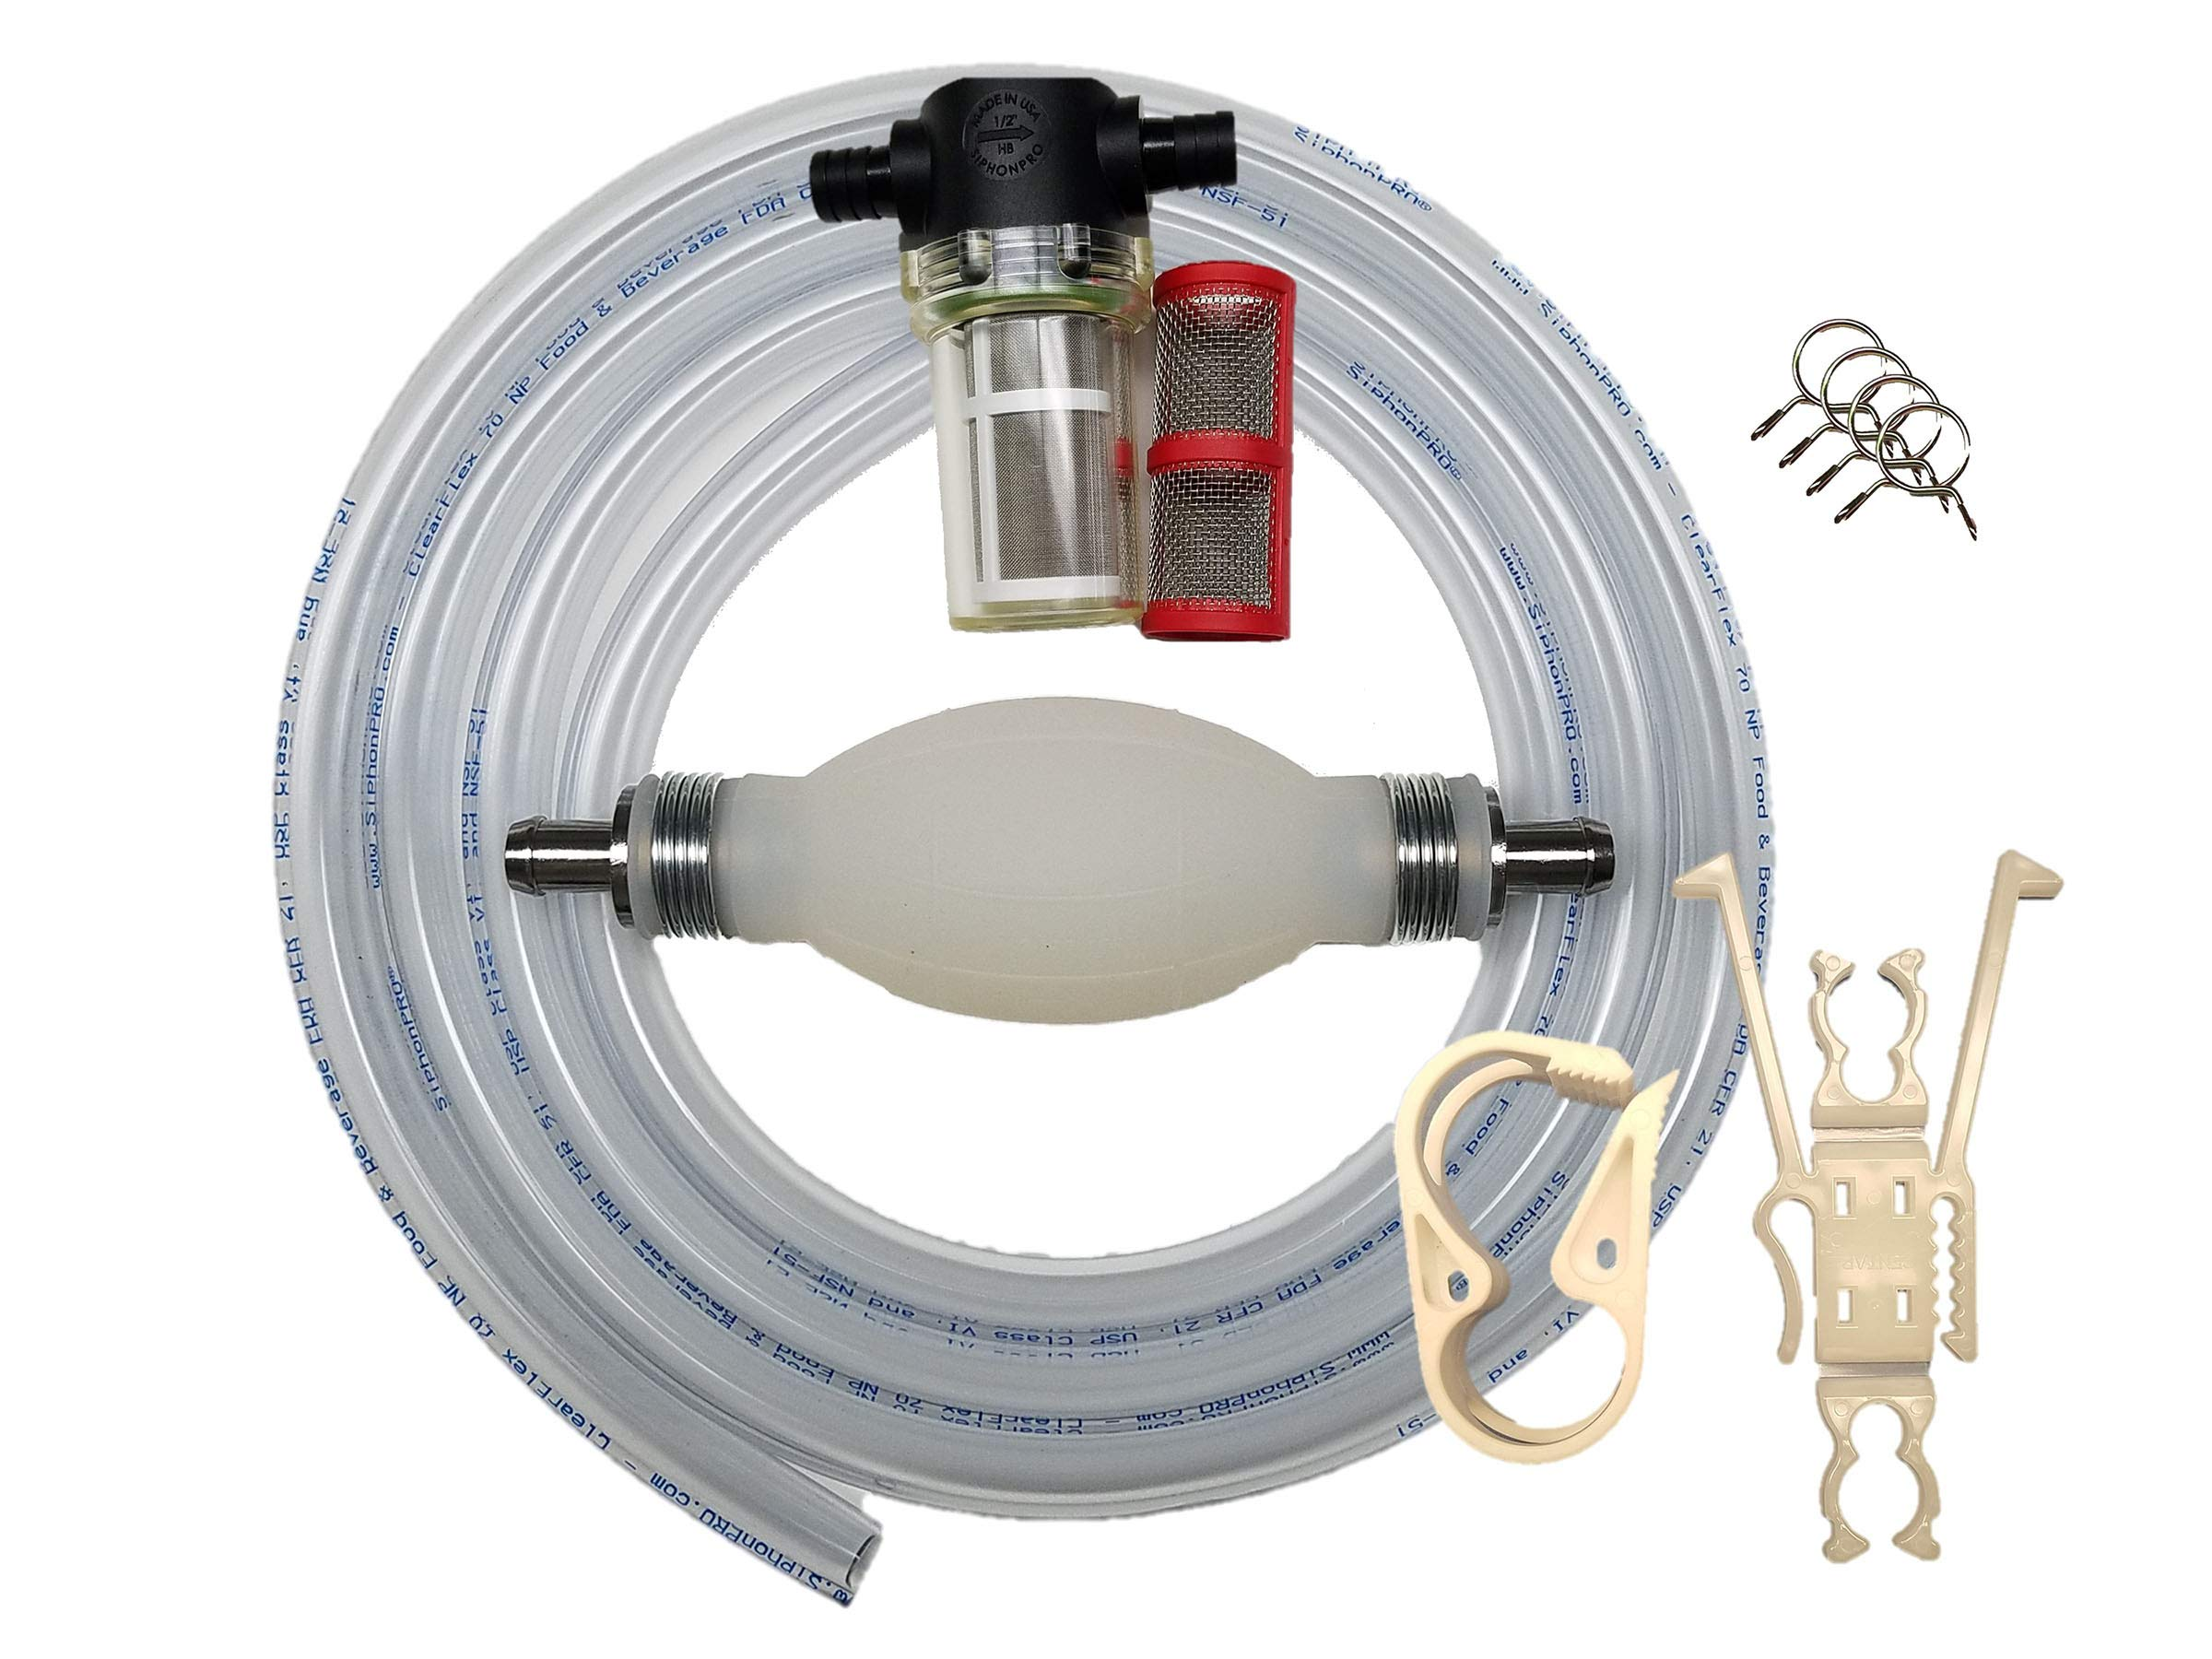 Siphon Pro Beverage & Potable water food grade siphon and pump by GasTapper